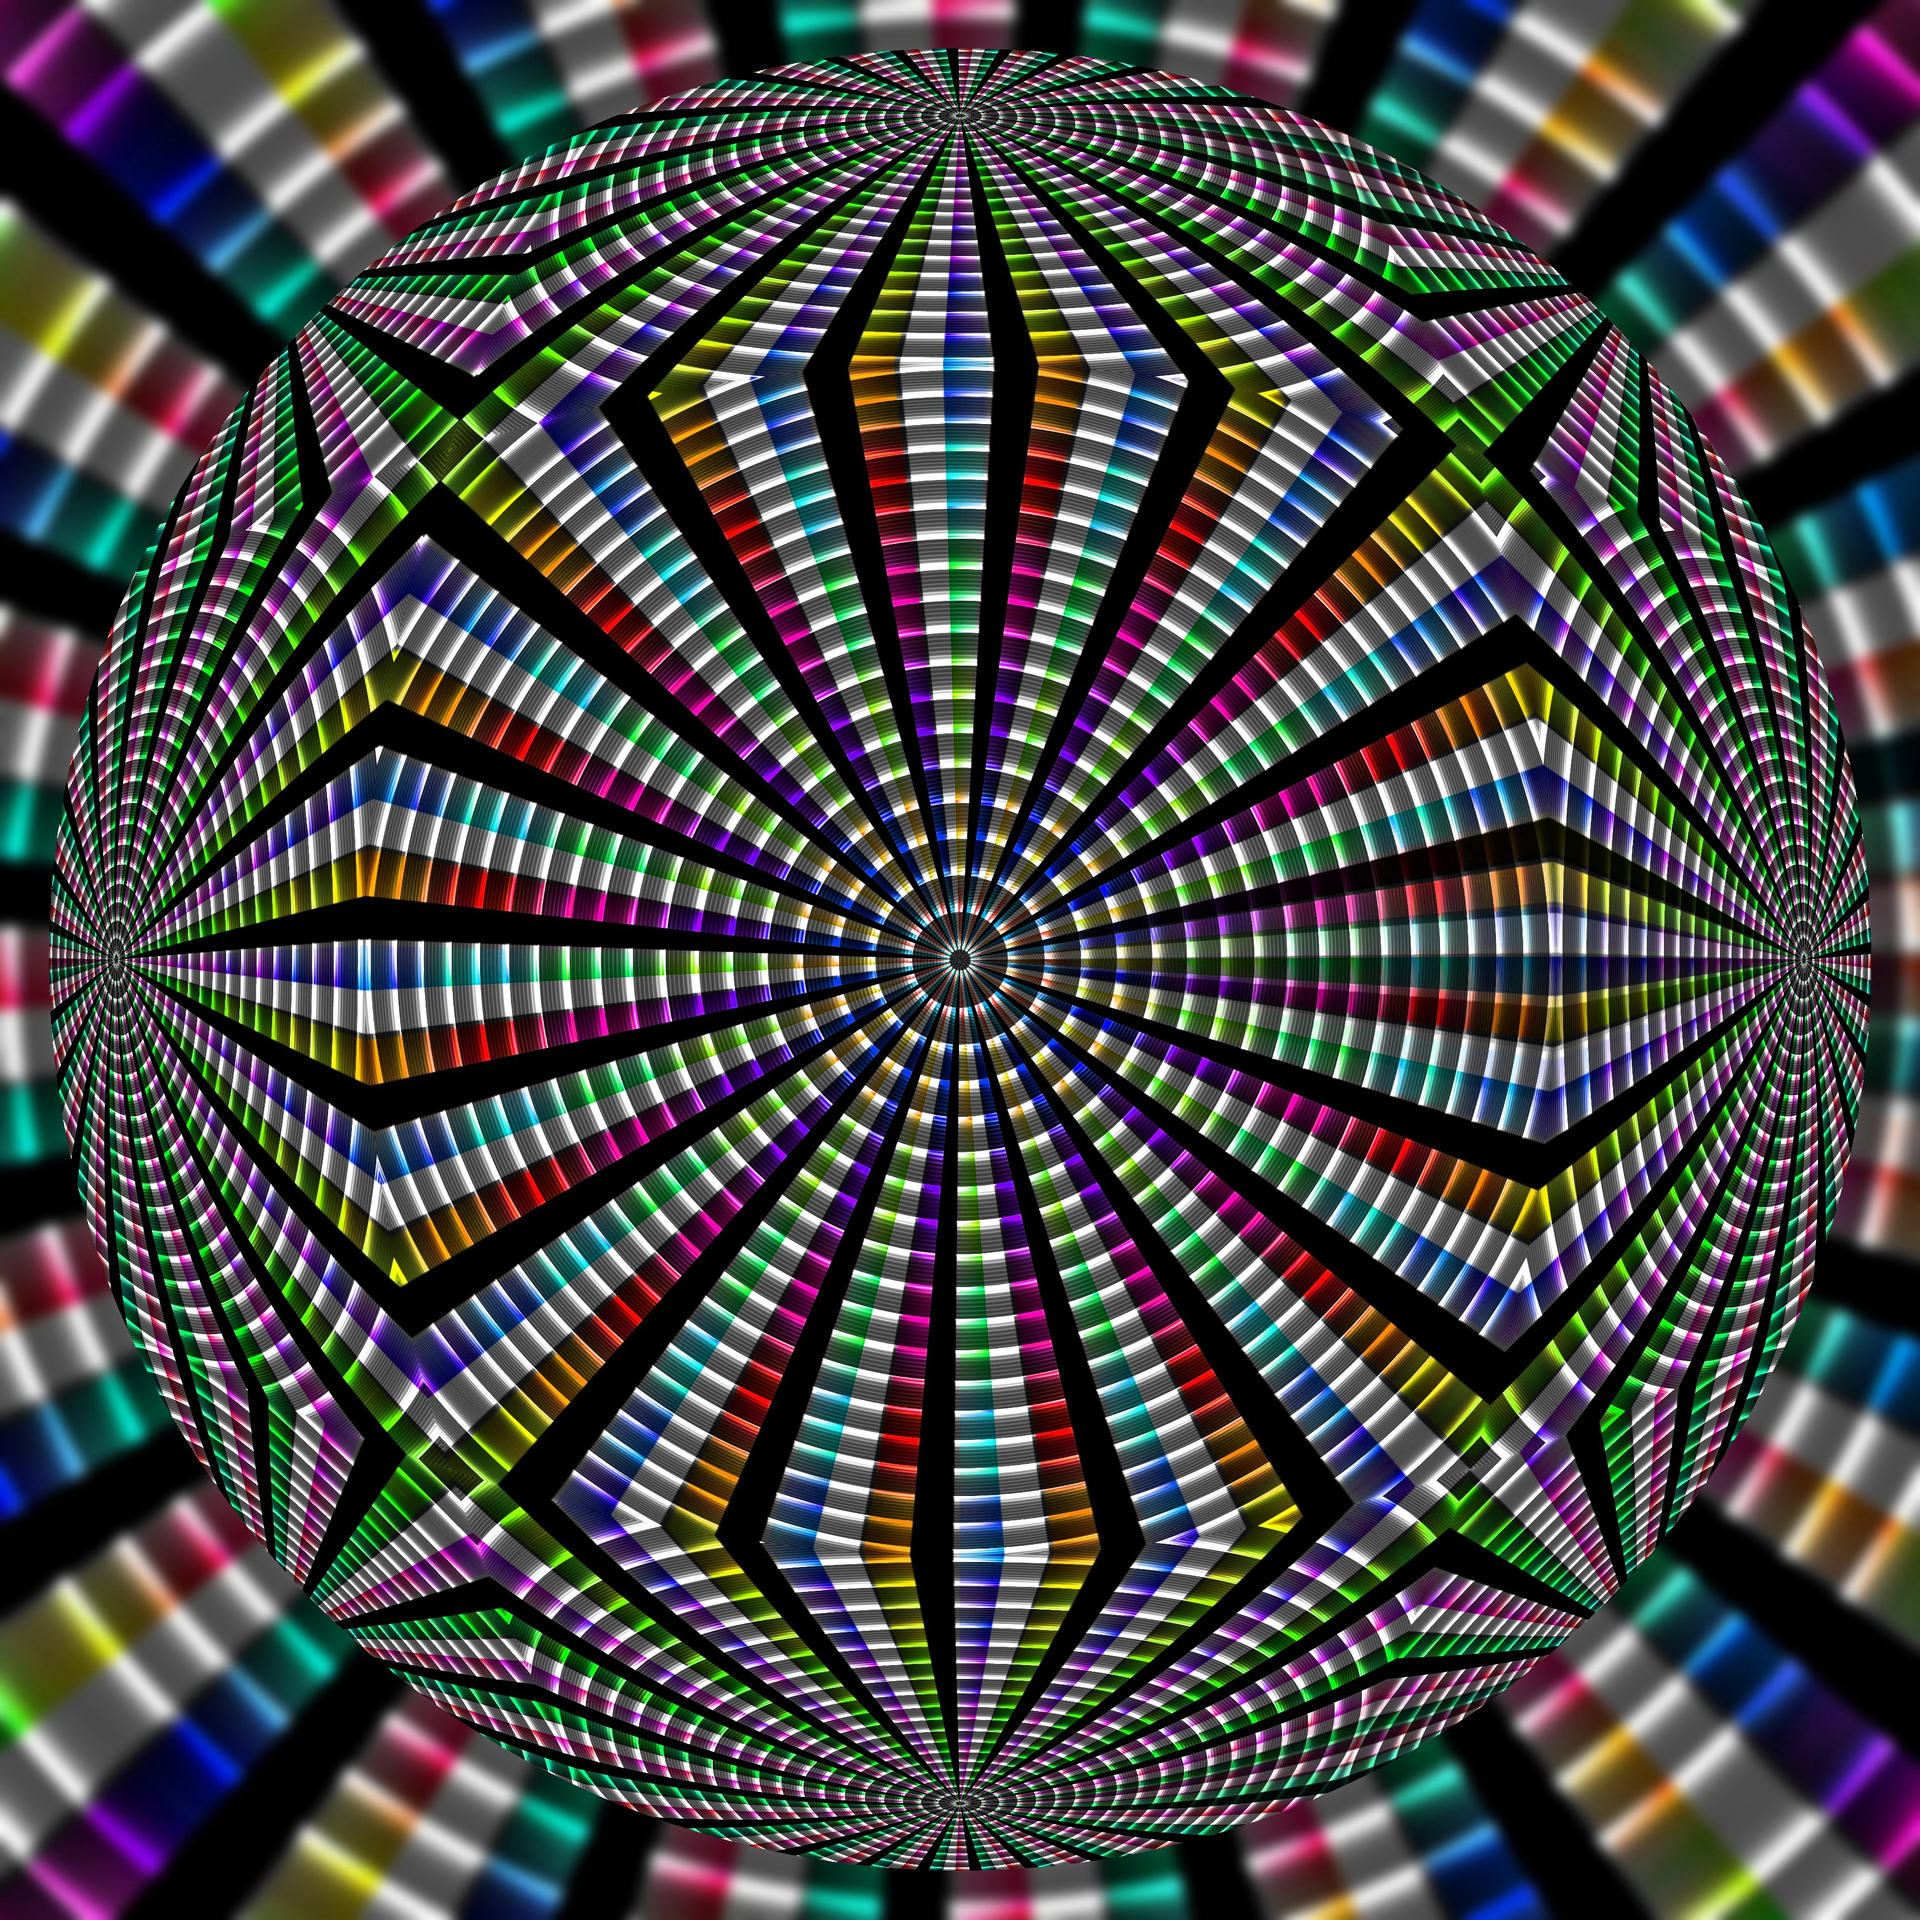 Abstraction of Colors